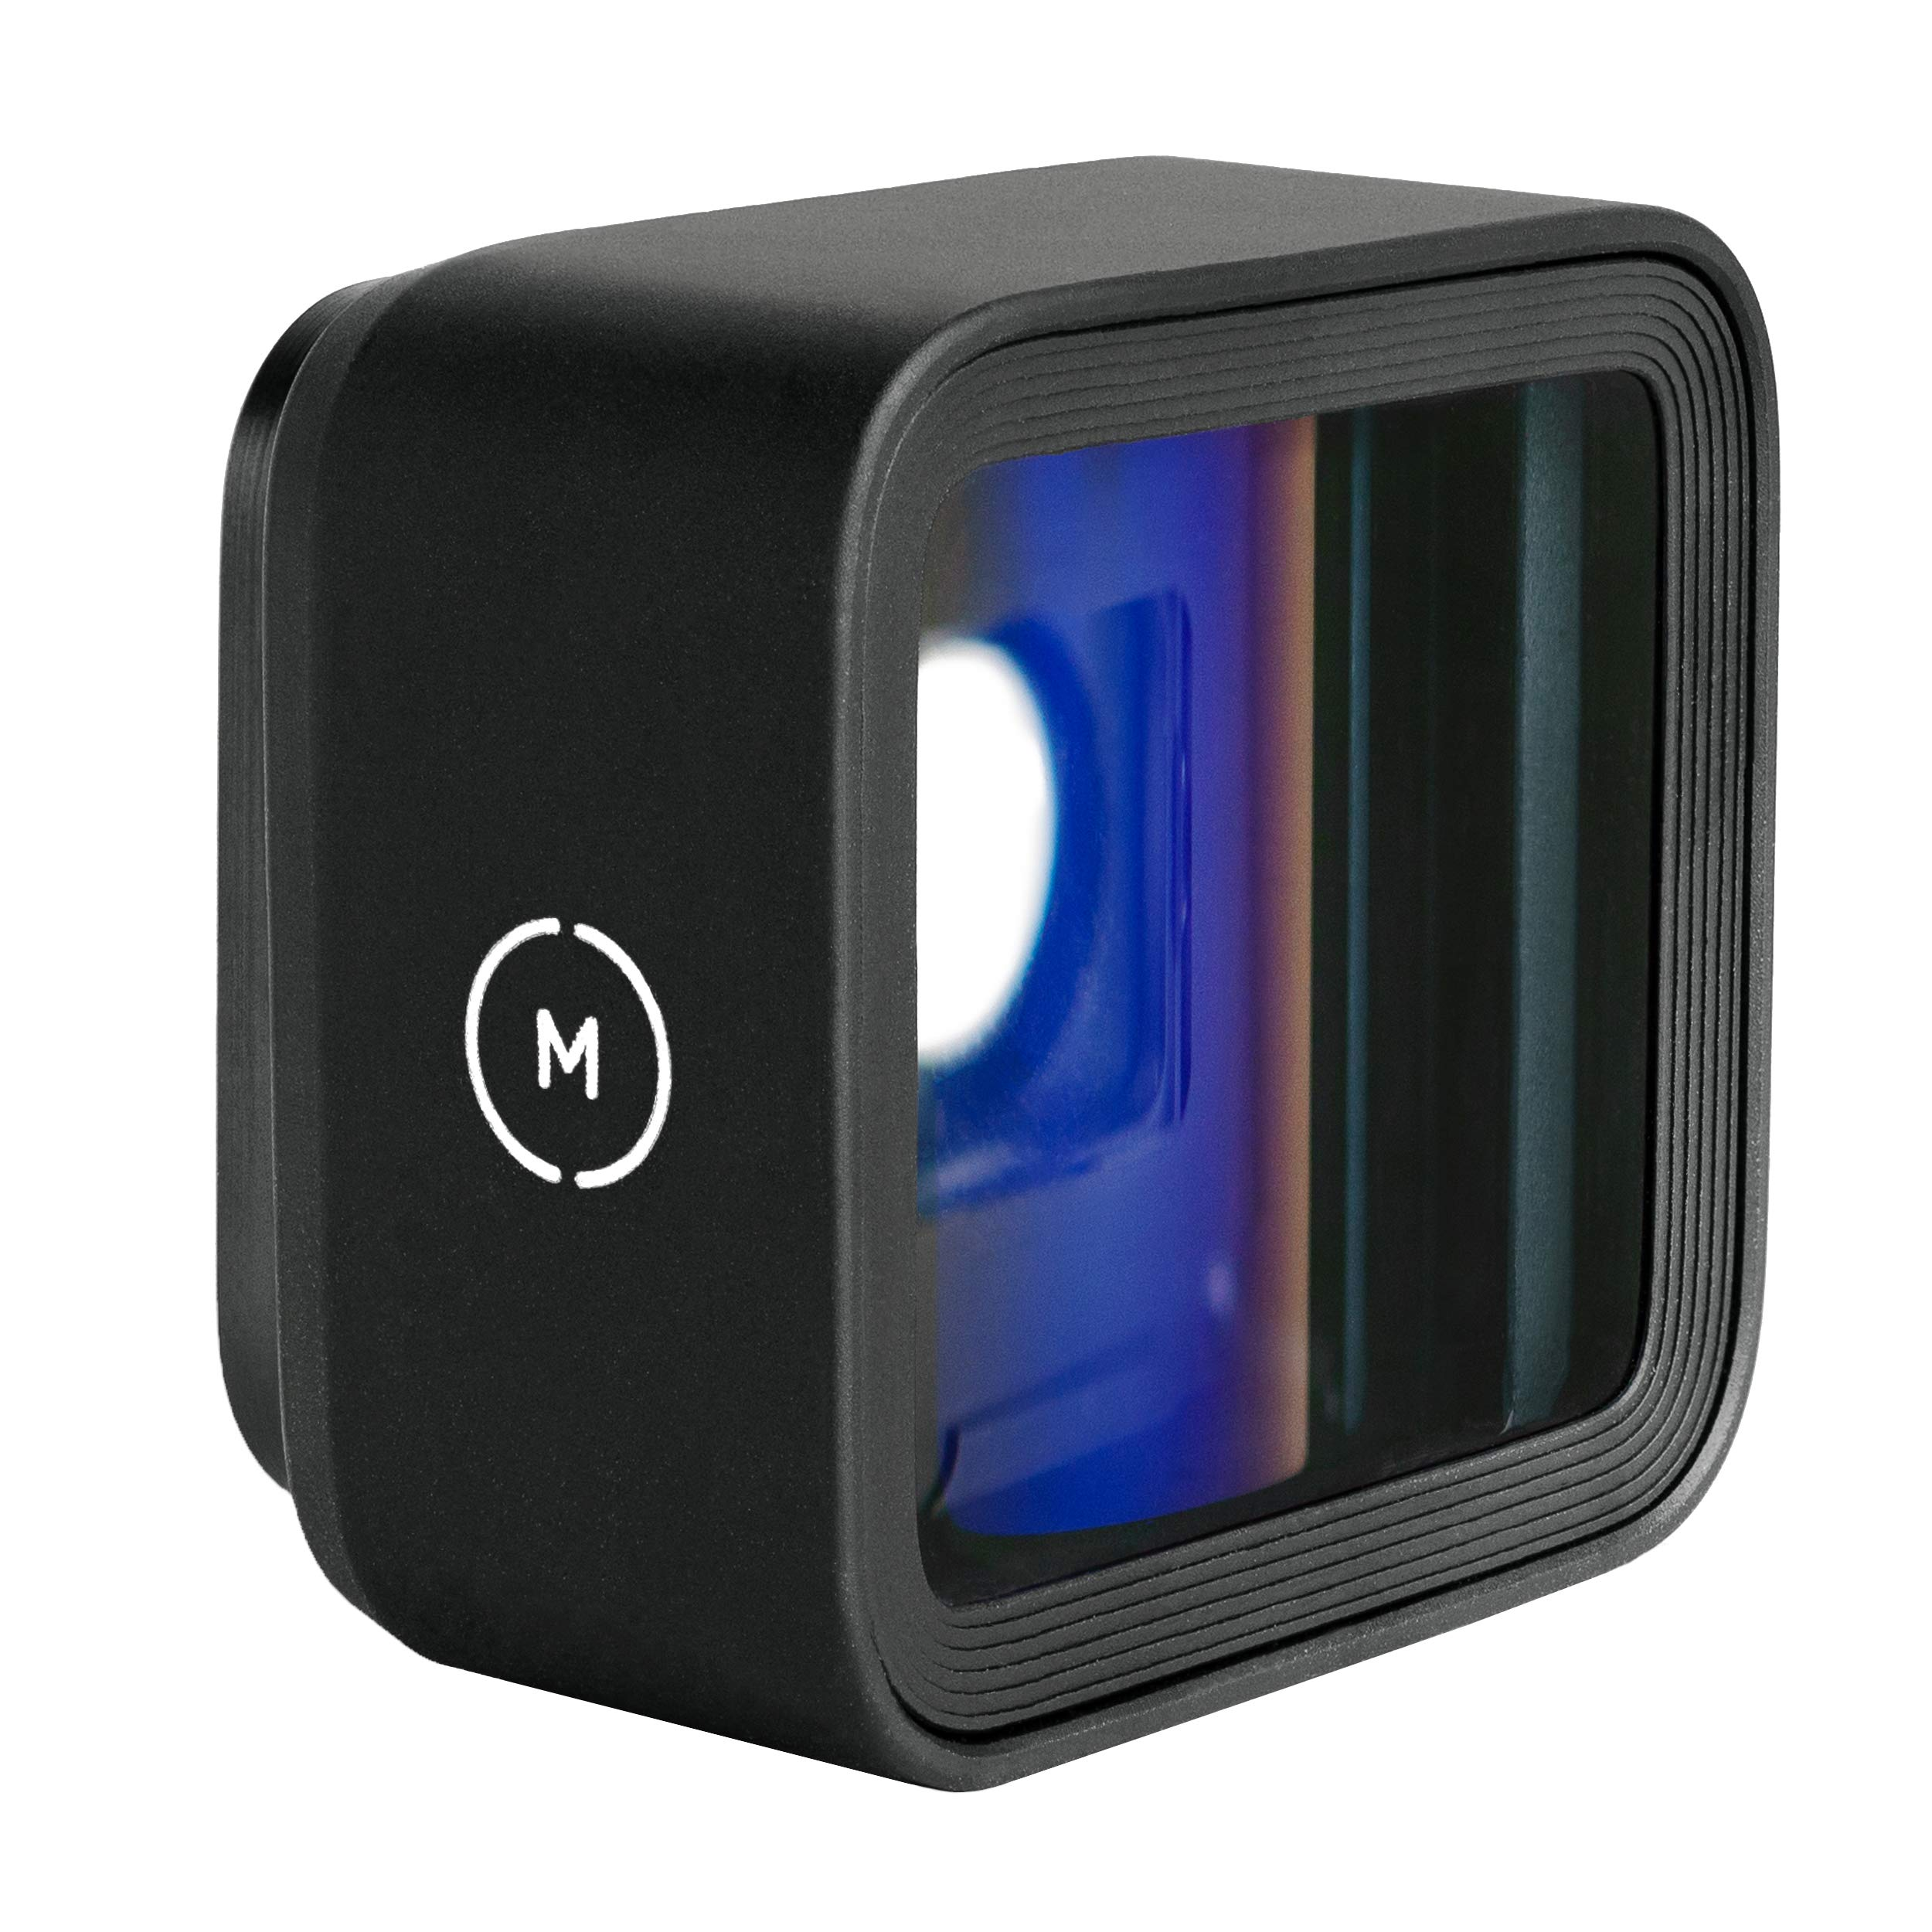 Moment - Anamorphic Lens for iPhone, Pixel, Samsung Galaxy and OnePlus Camera Phones by Moment